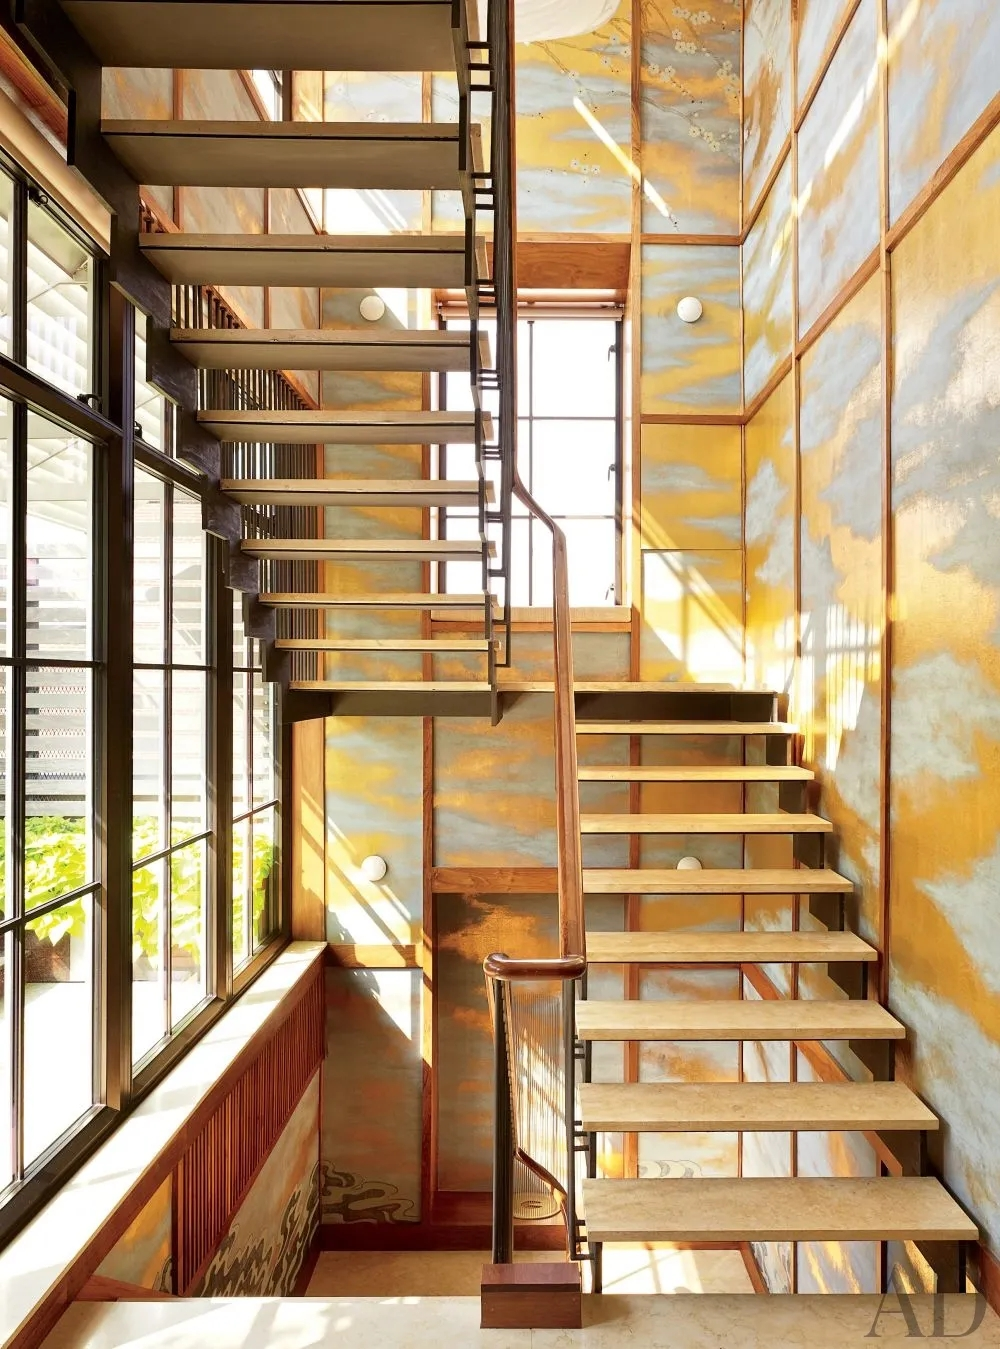 Types Of Stairs Explained Architectural Digest | Designs Of Stairs Inside Small House | Stone Tiles | Decorating Ideas | Stair Treads | Space | Staircase Makeover